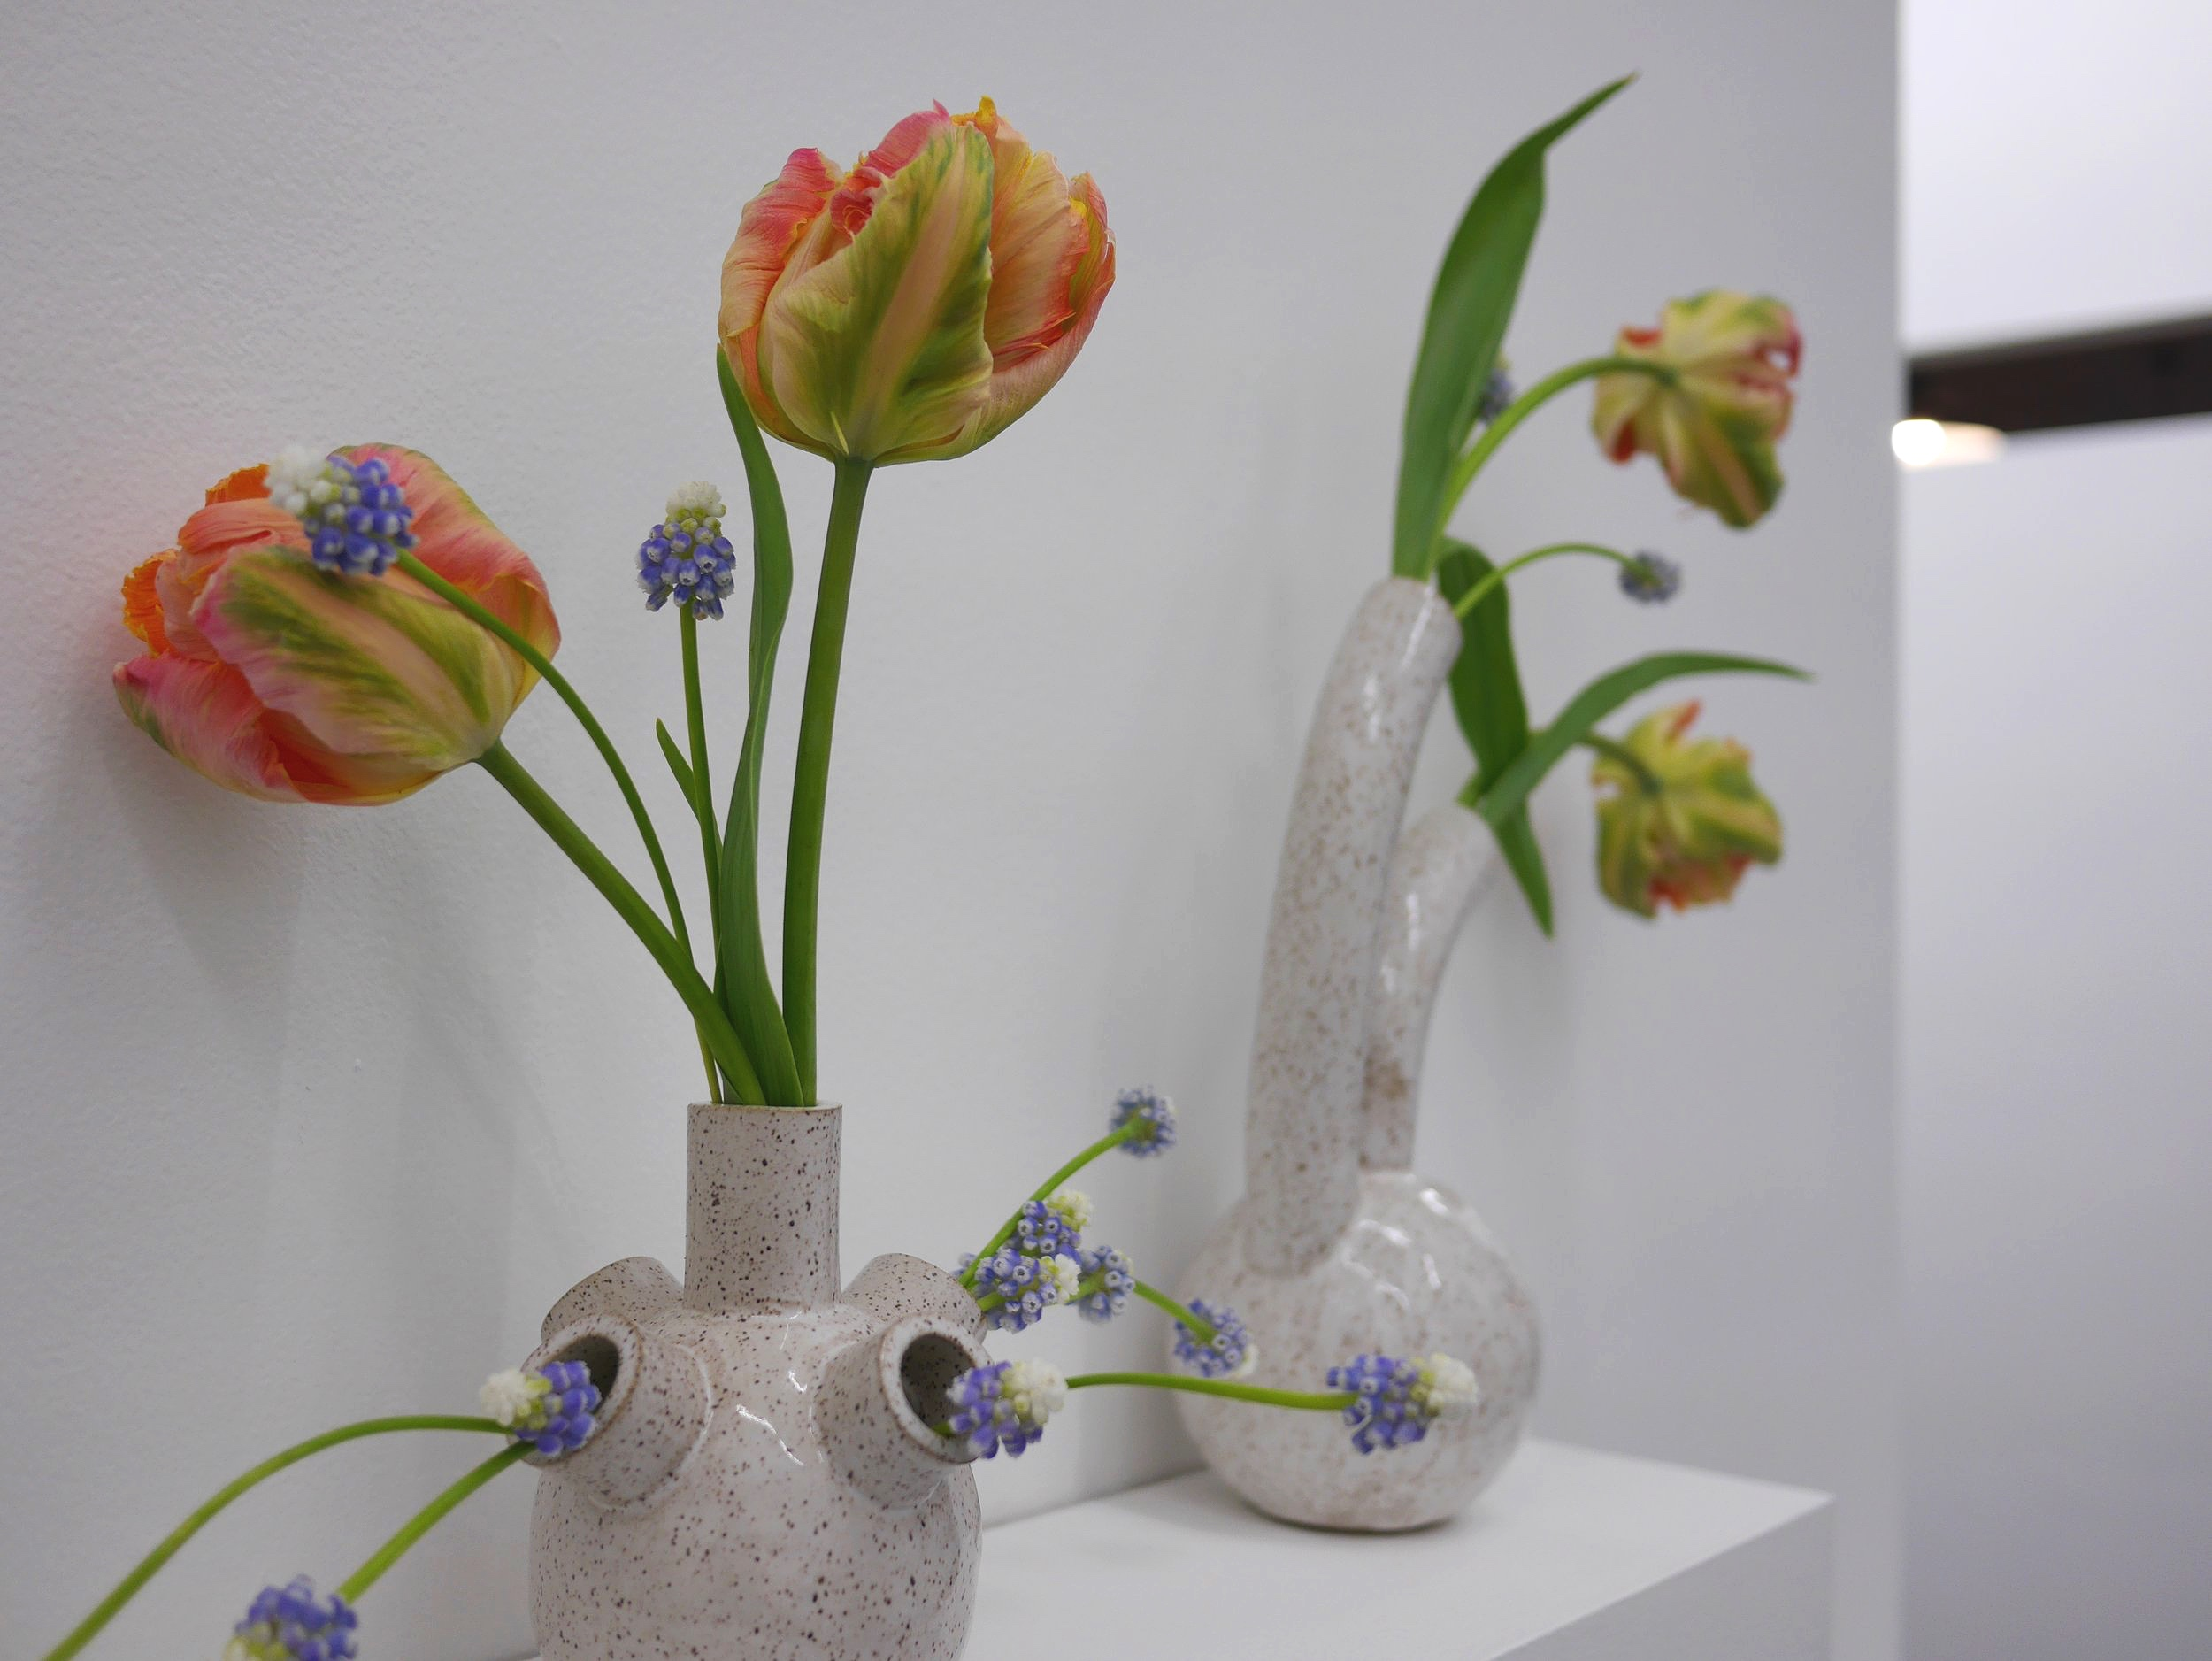 Flowers by Hilary Horvath  Vessel by Erica Prince